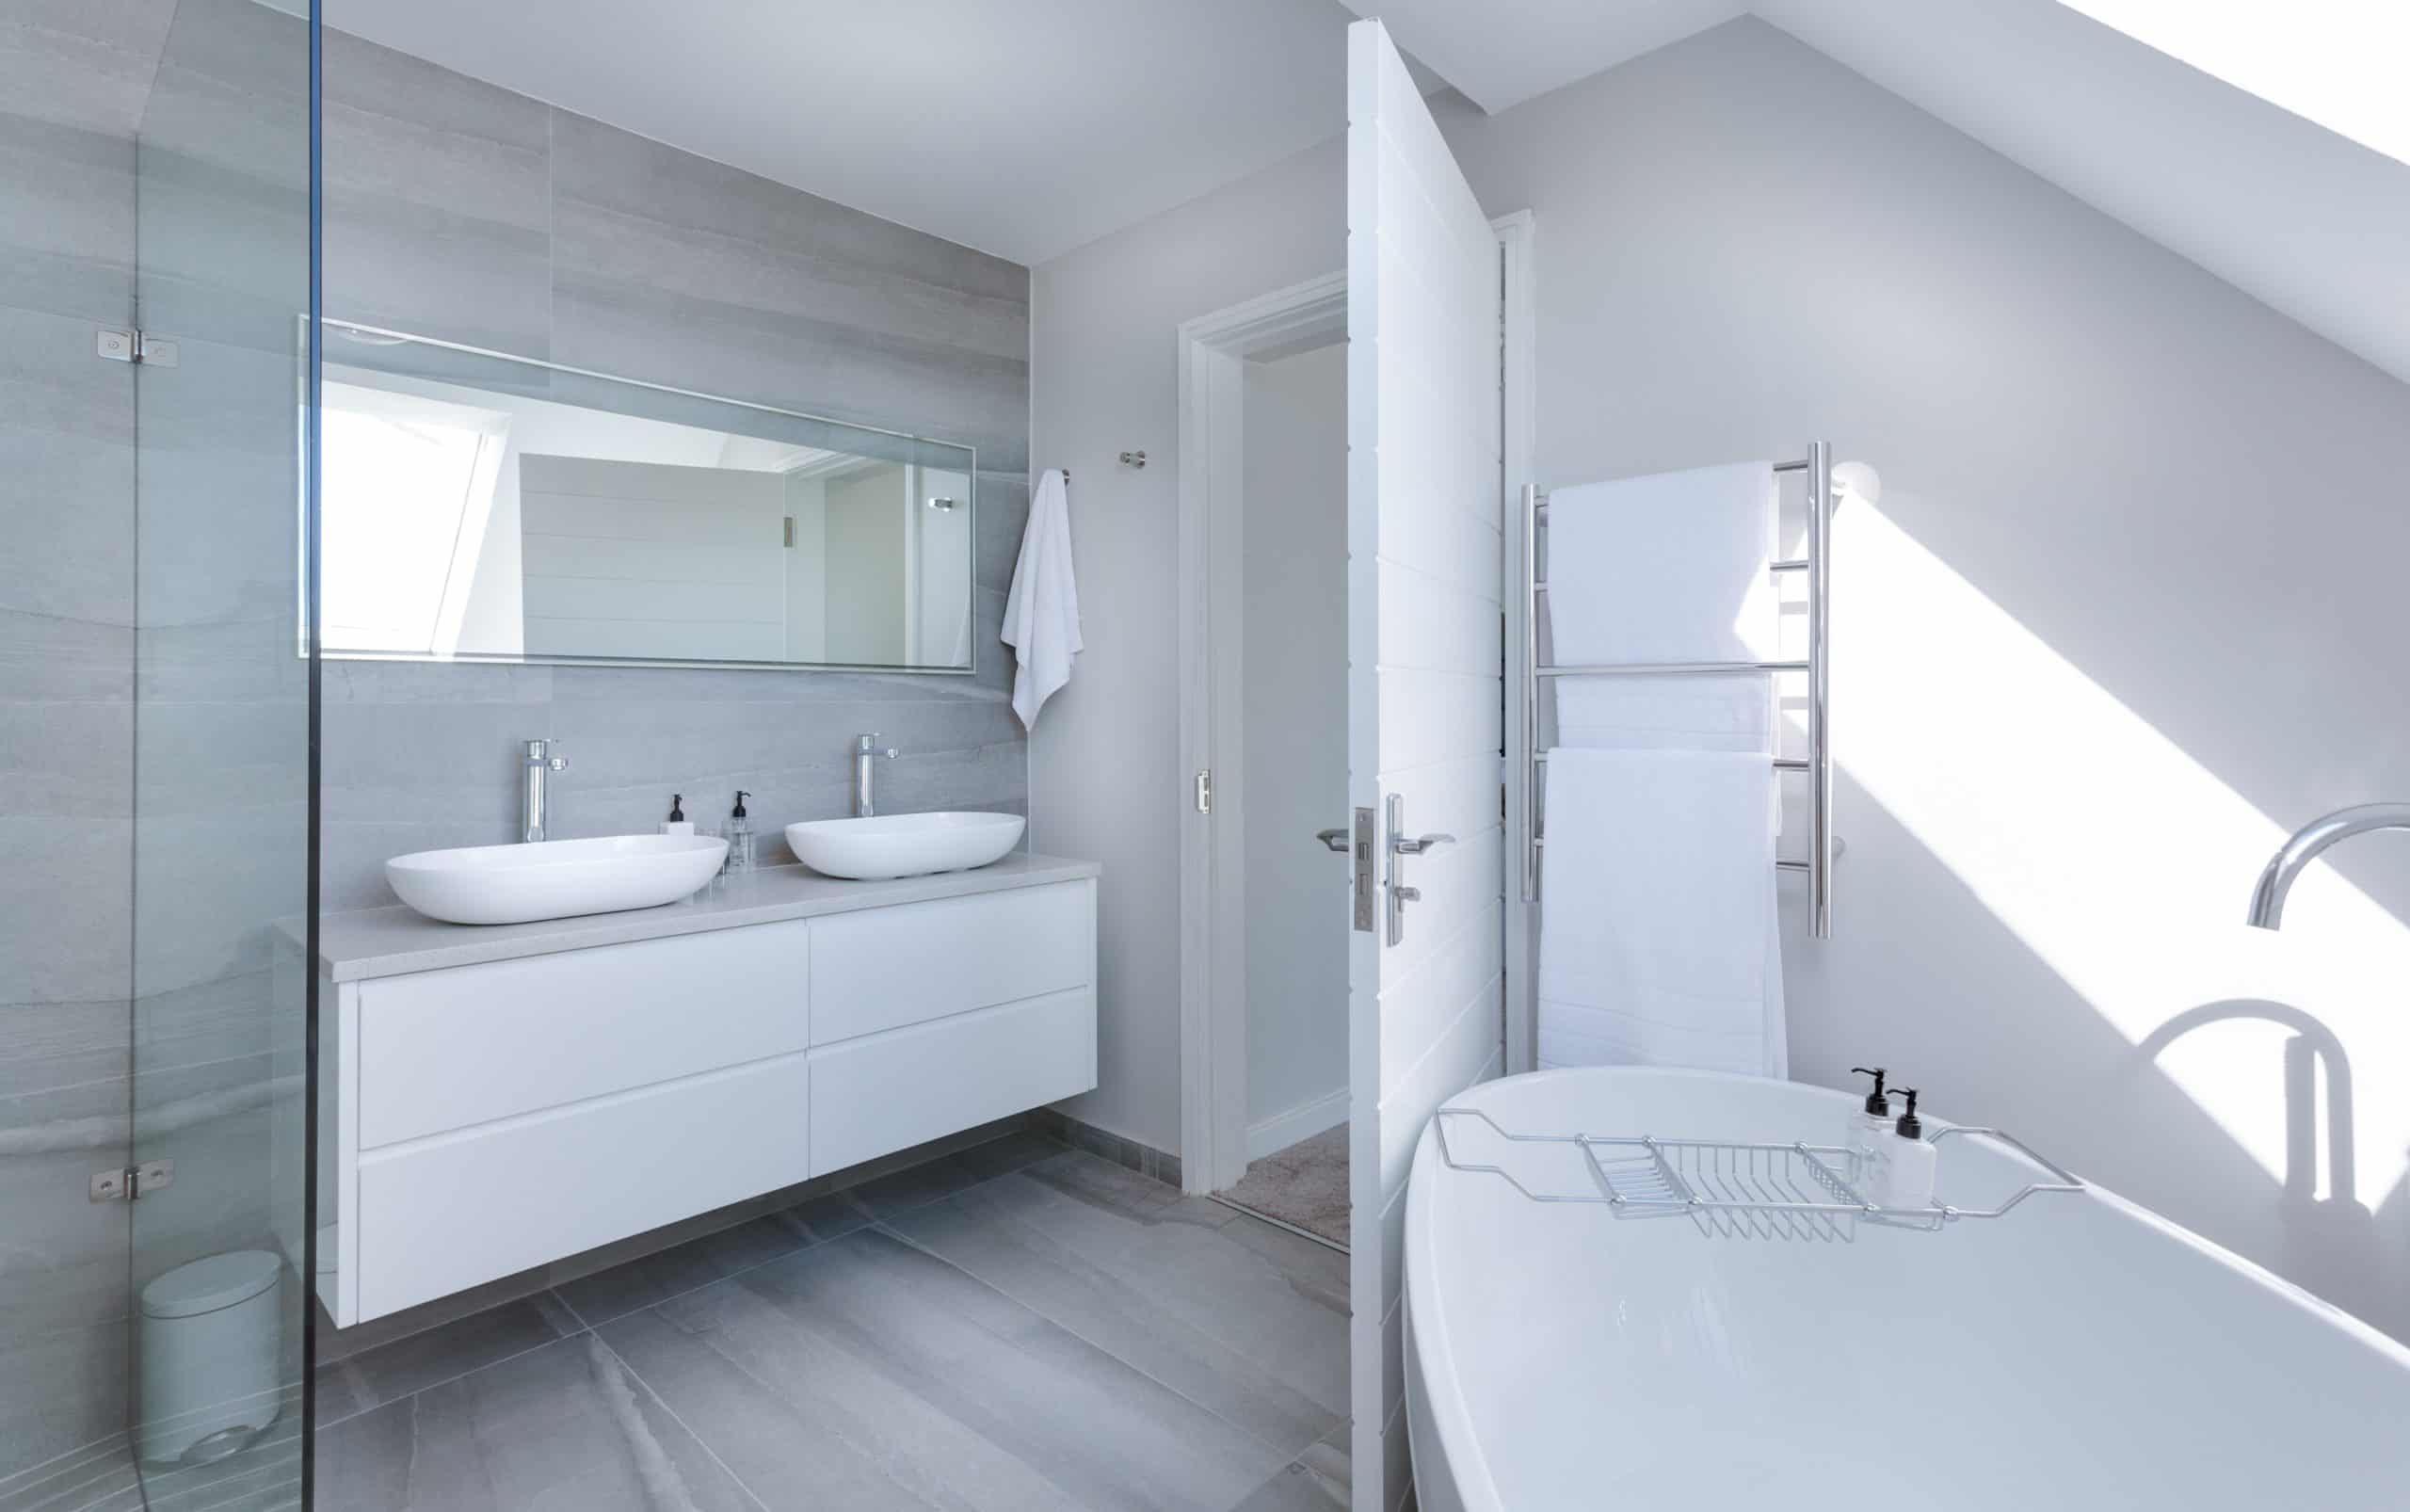 Tips For Renovation of the Bathroom